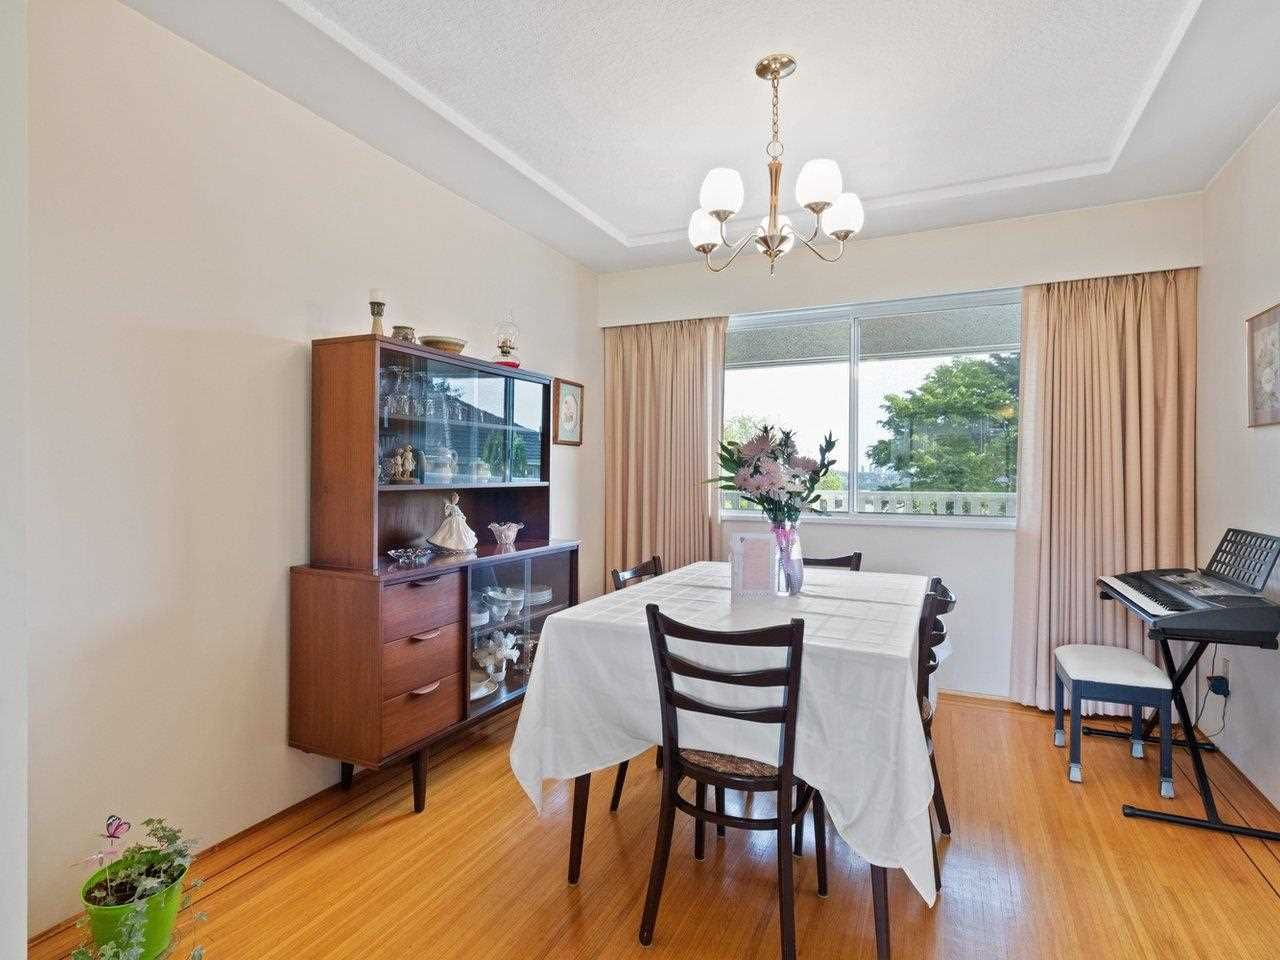 Photo 8: Photos: 1510 CHARLAND Avenue in Coquitlam: Central Coquitlam House for sale : MLS®# R2577681